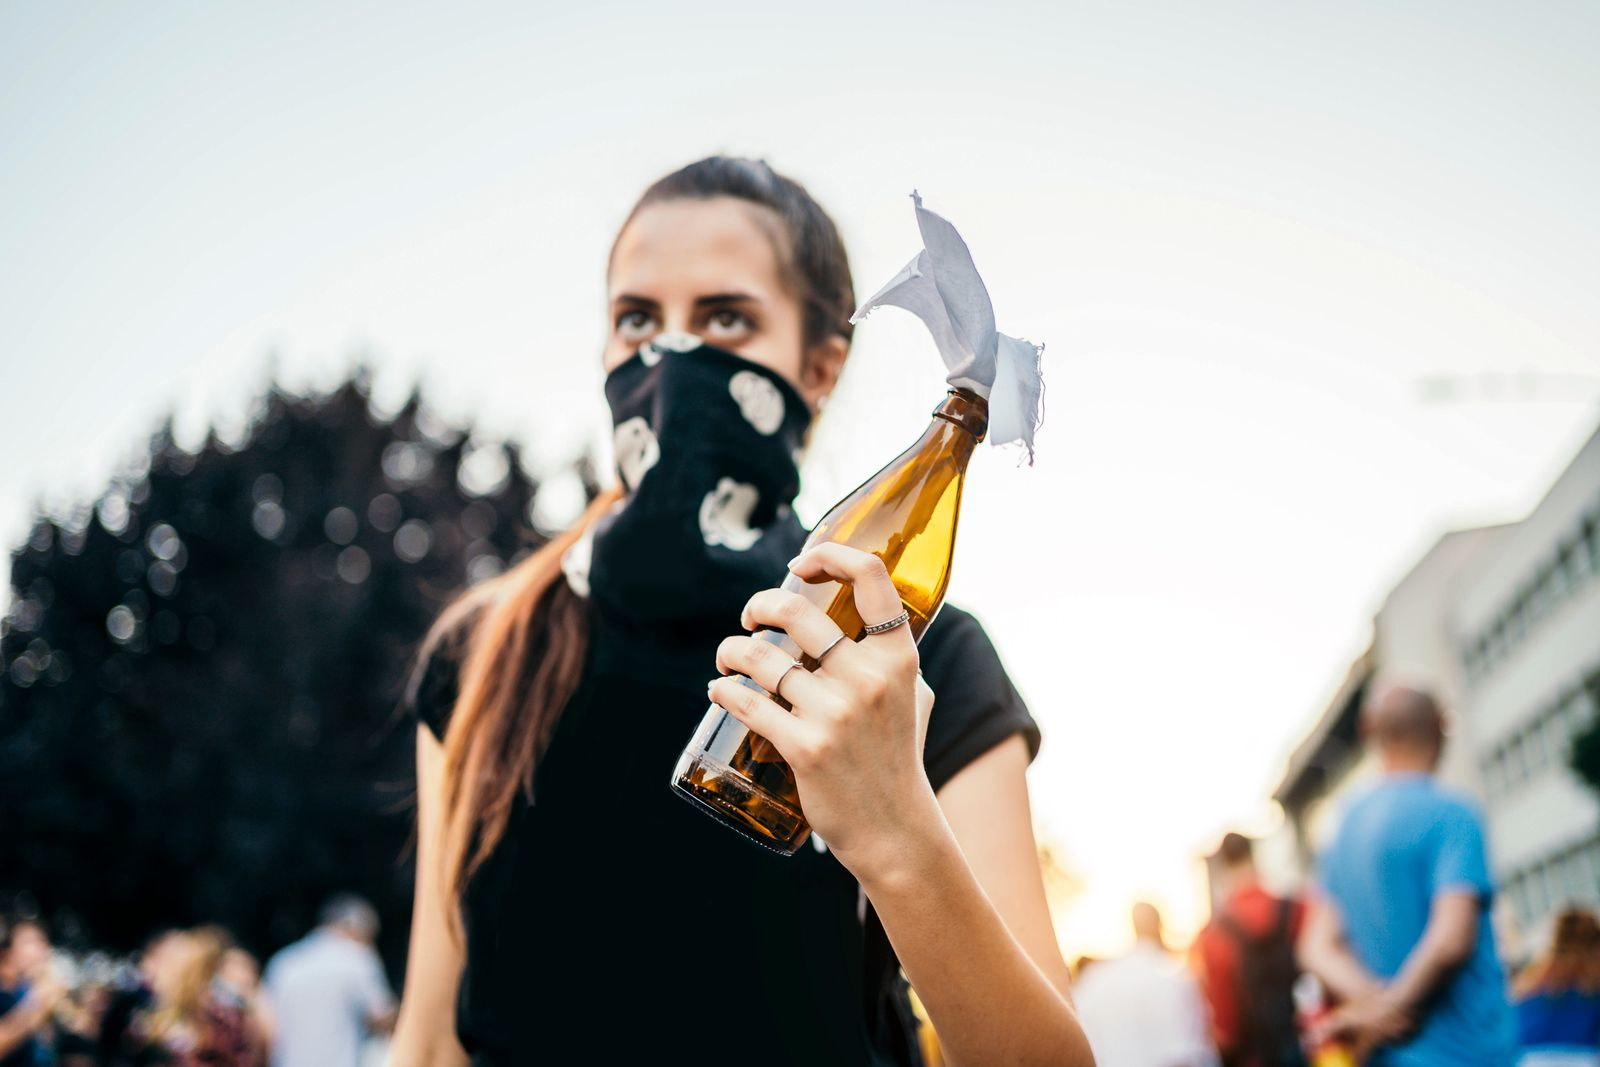 Young female protester with Molotov cocktail